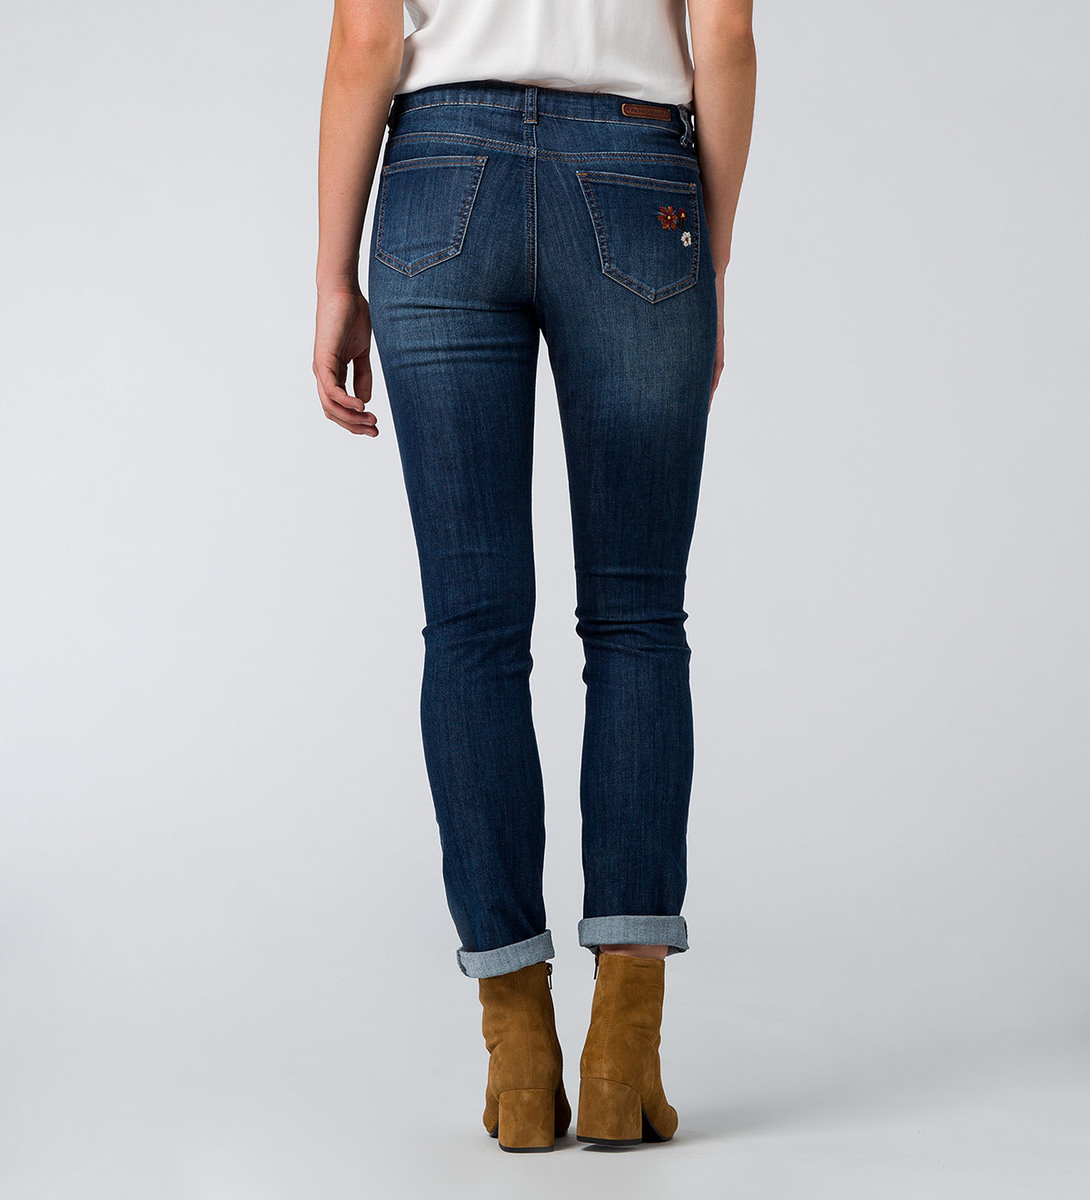 Jeans Orlando 32 Inch in mid blue embroidery